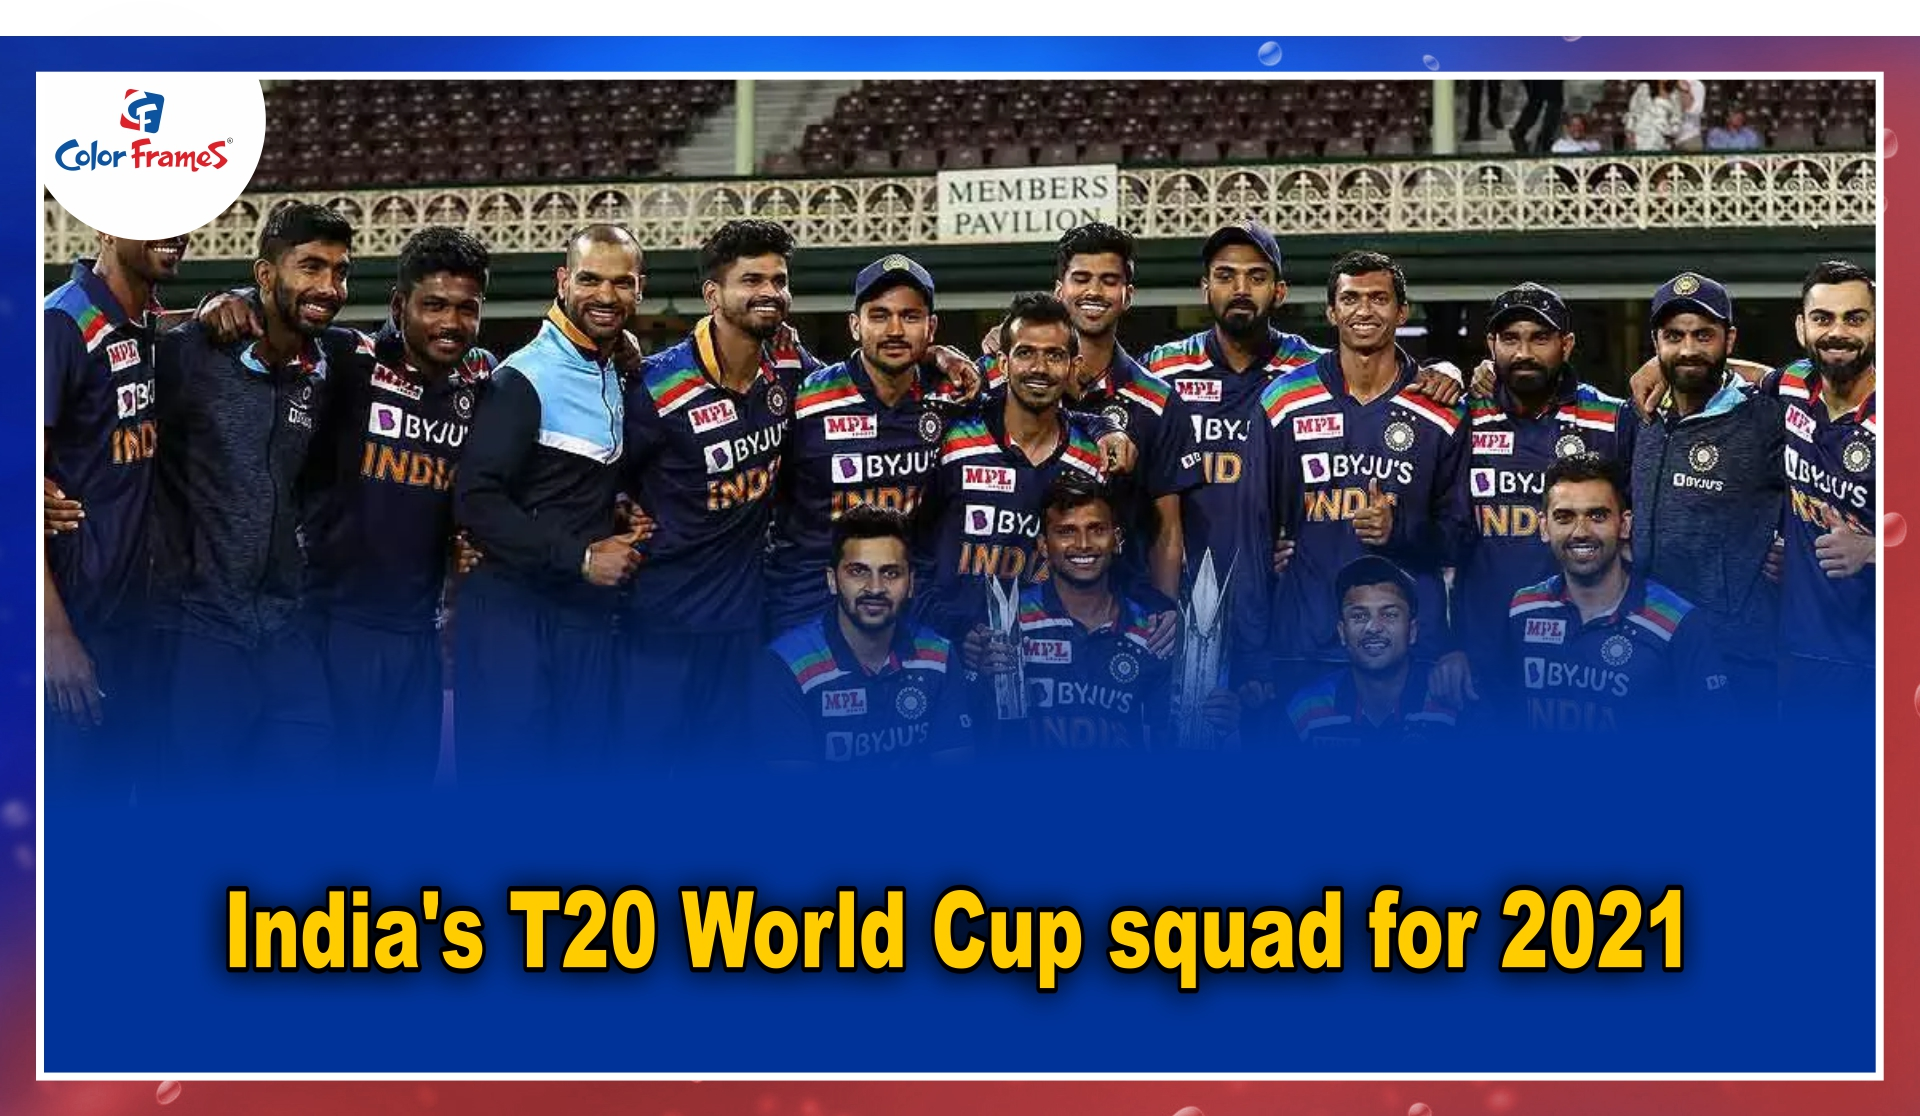 India's T20 World Cup squad for 2021